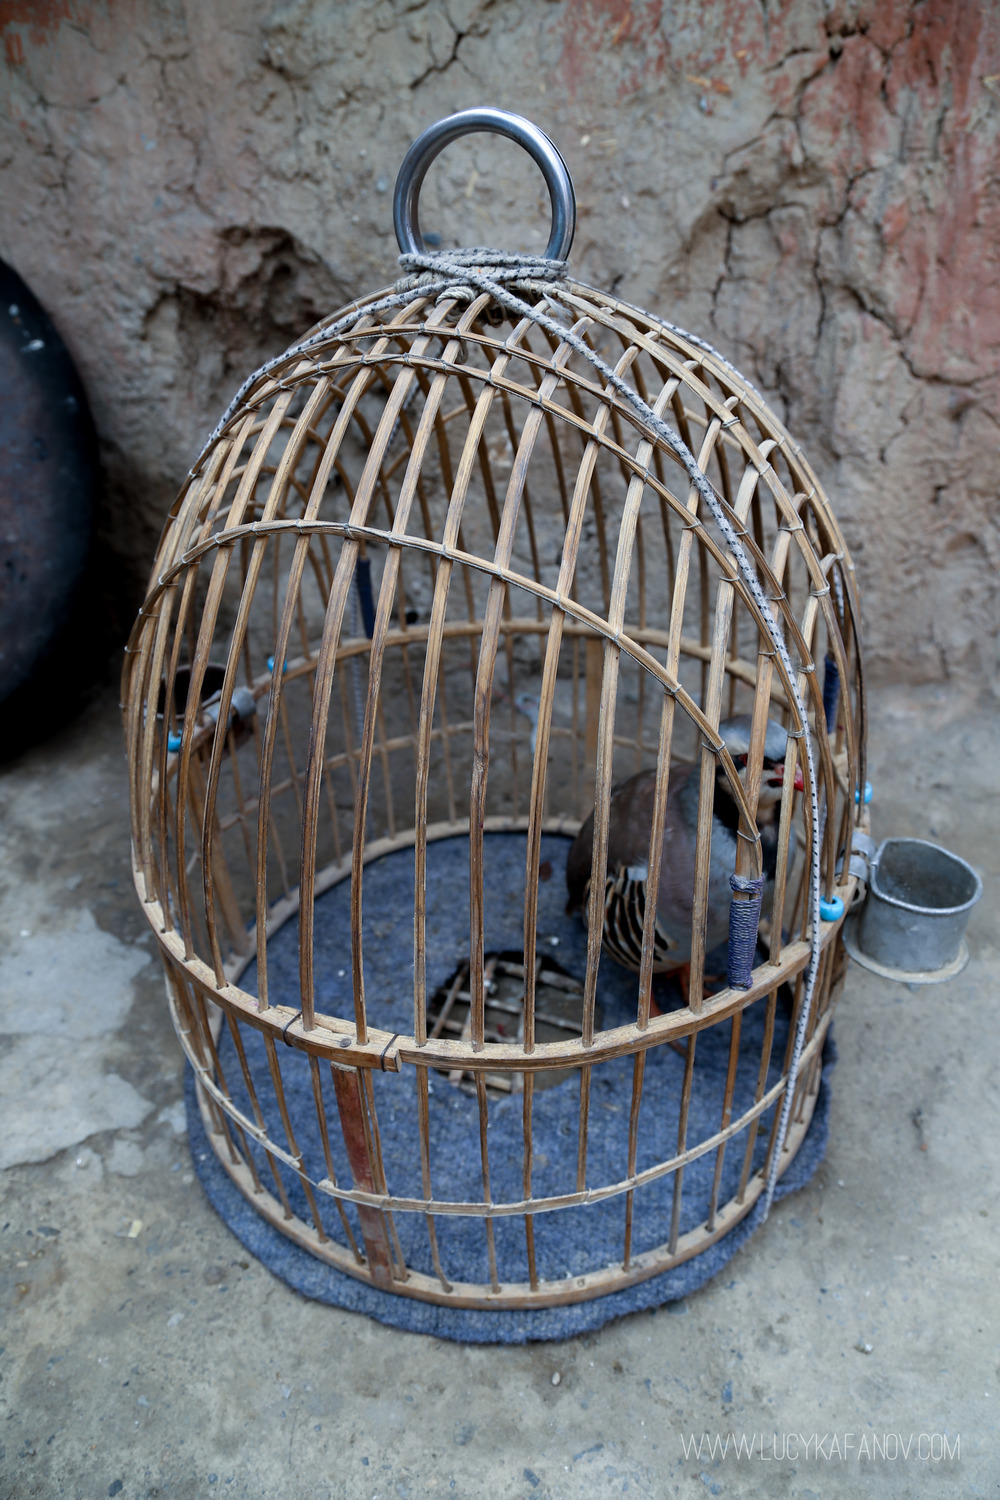 A fighting quail sits in its cage on the ground at an IDP camp in Kabul.